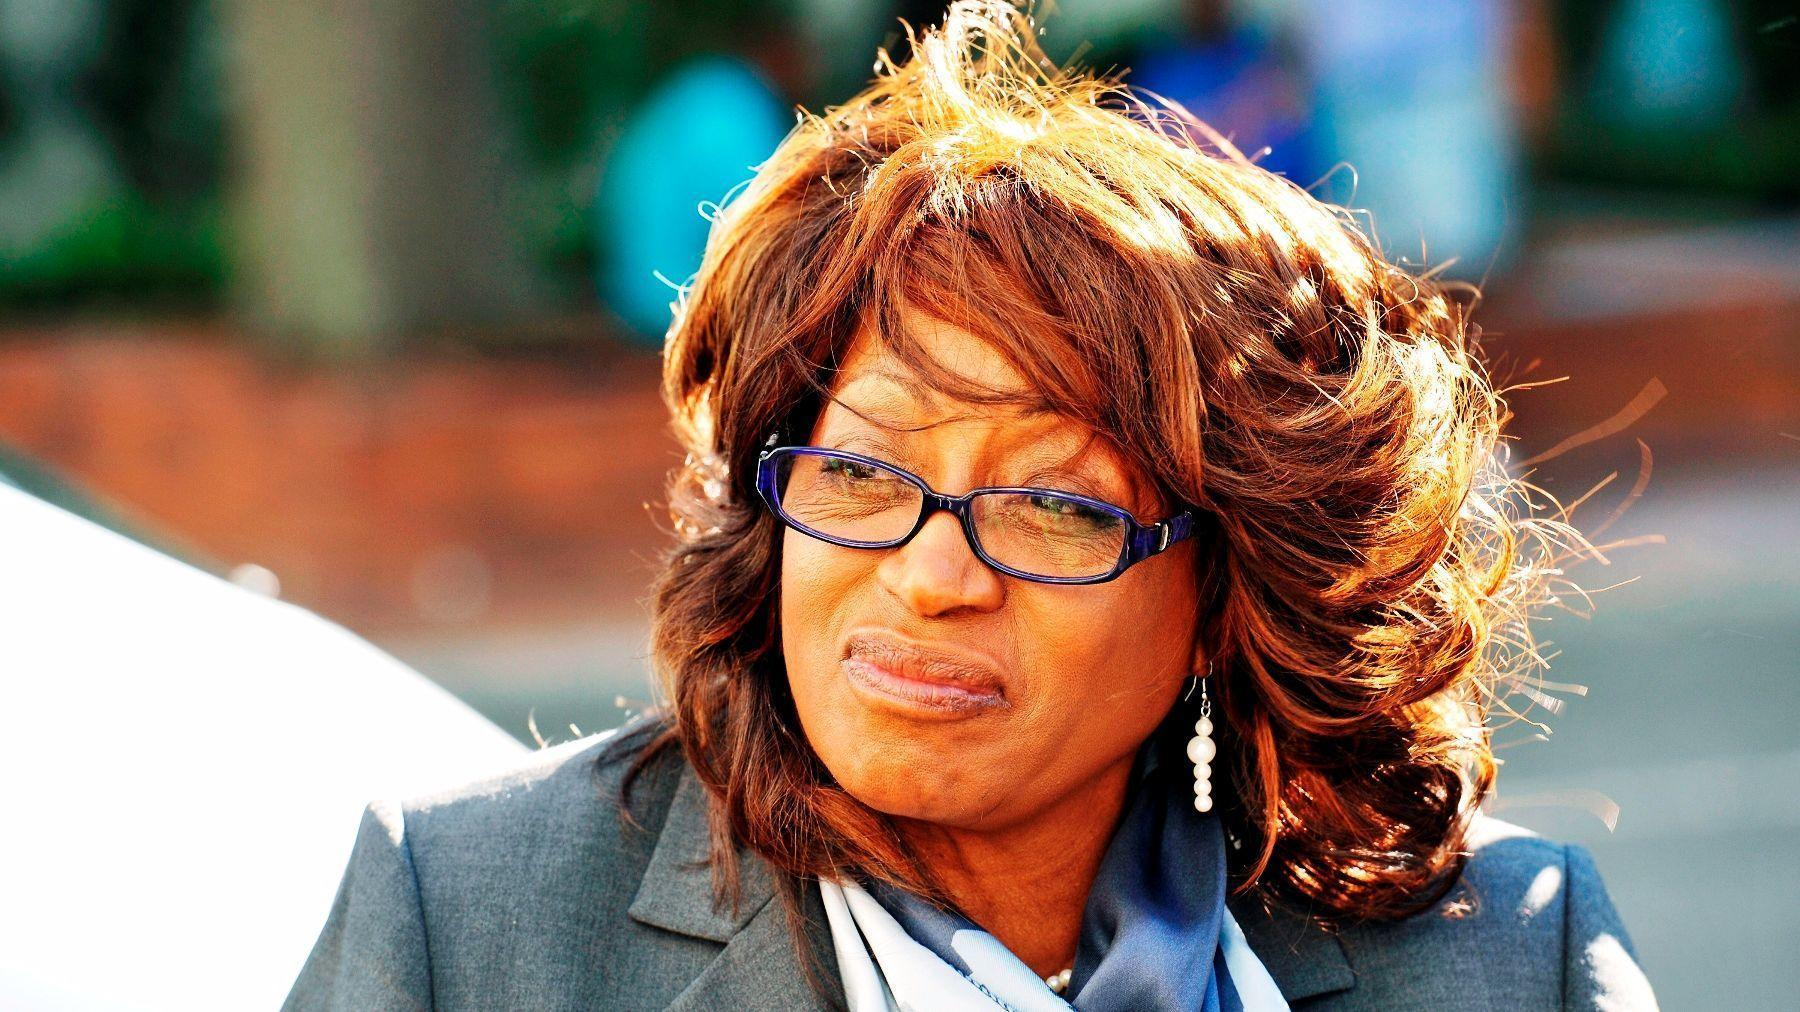 Ex-U.S. Rep. Corrine Brown to be sentenced today